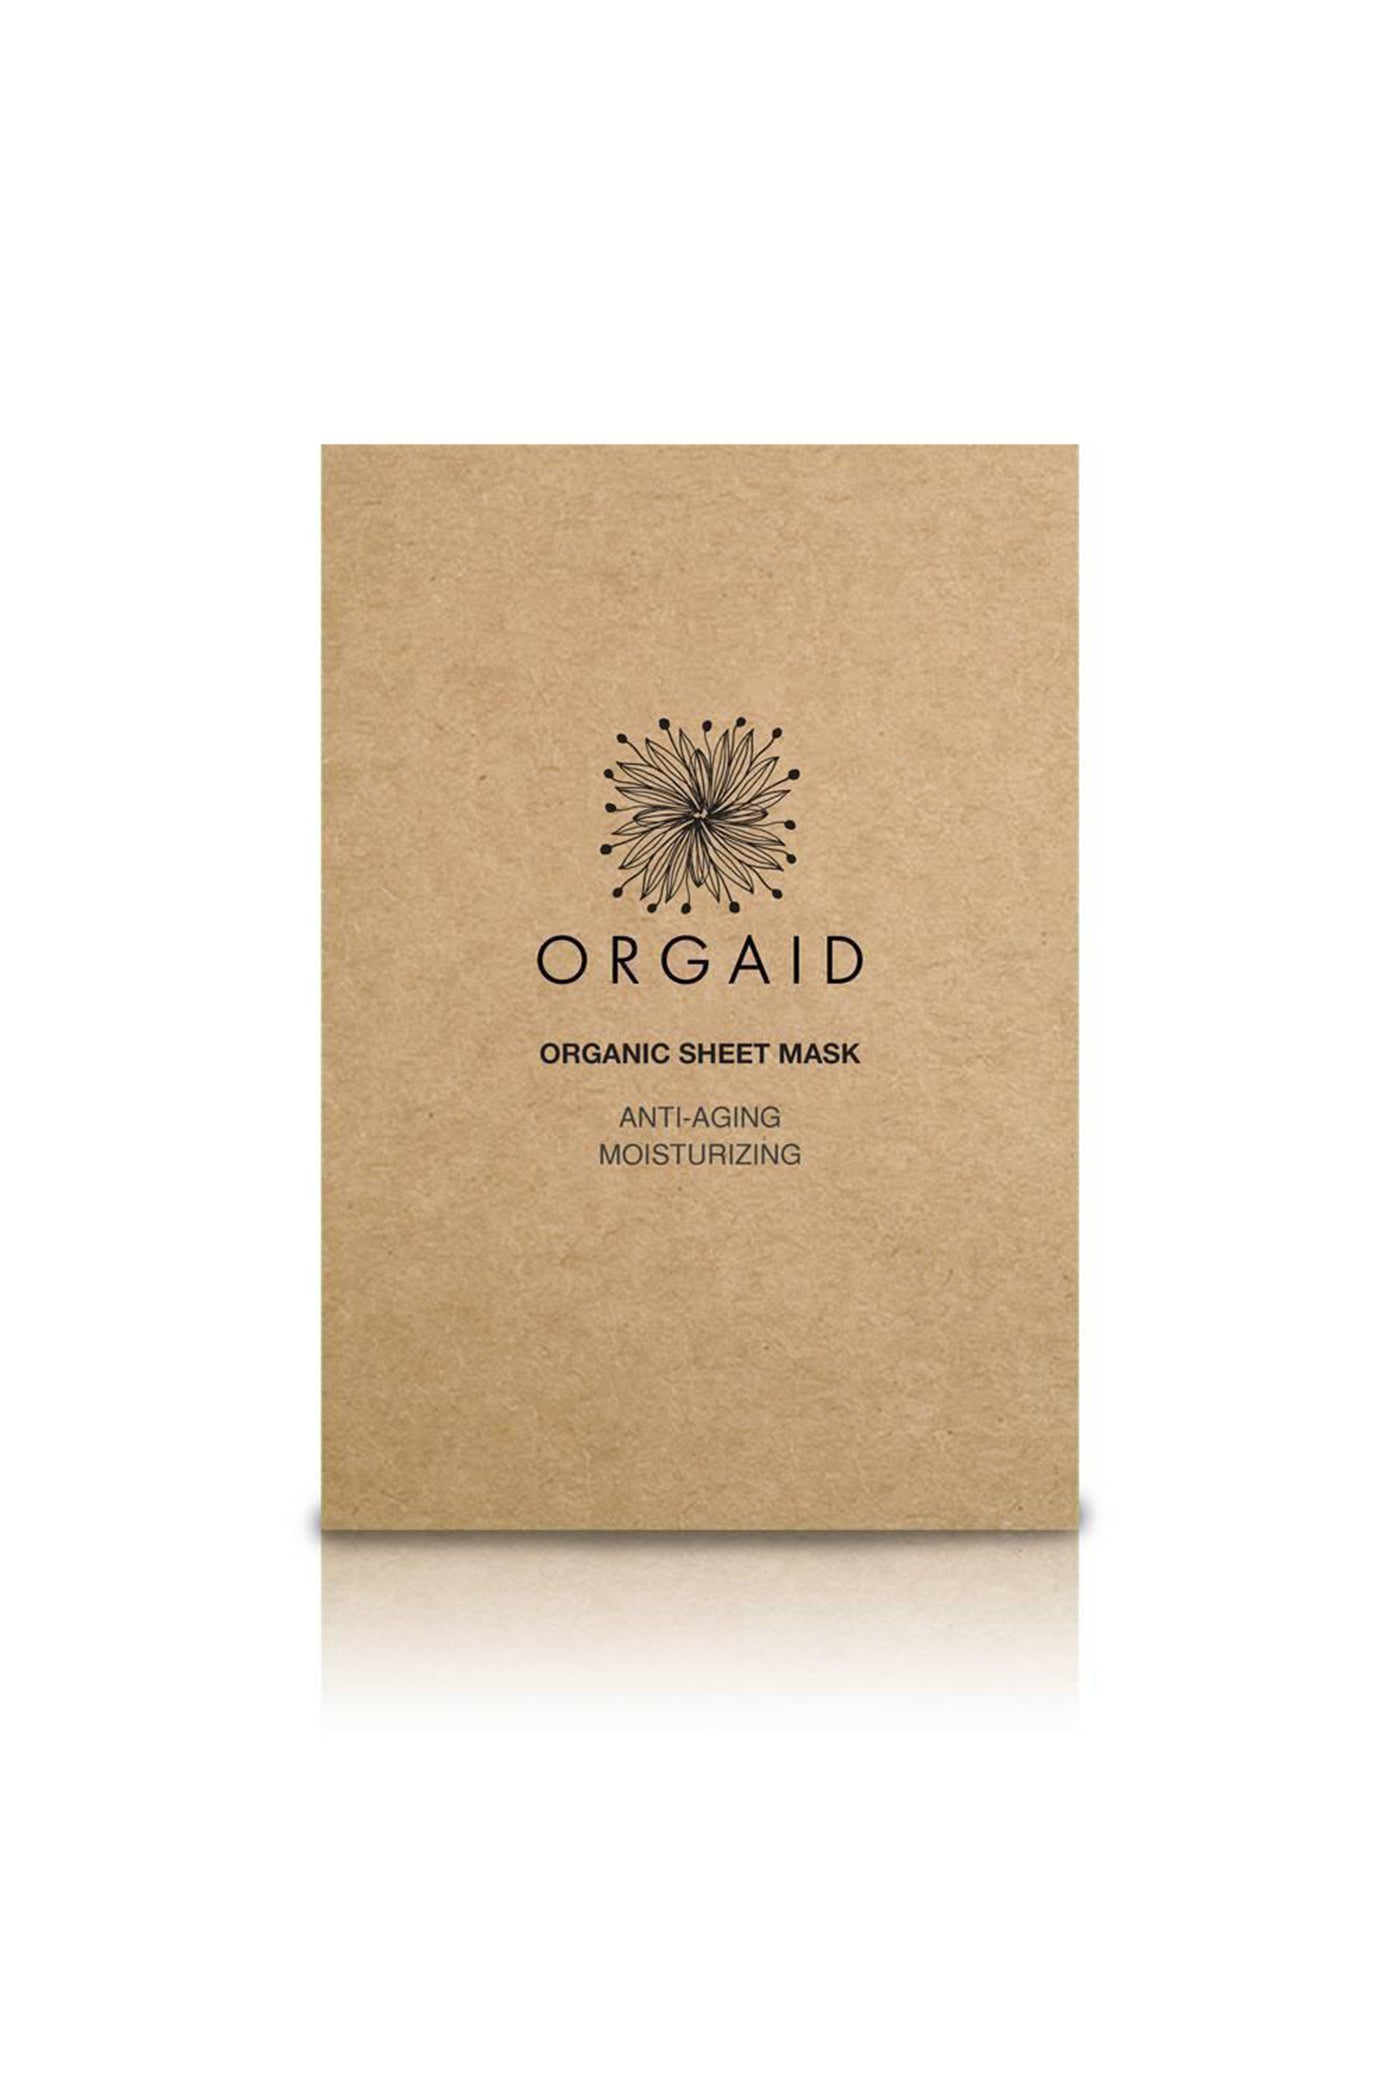 Anti-Aging & Moisturizing Face Mask by Orgaid